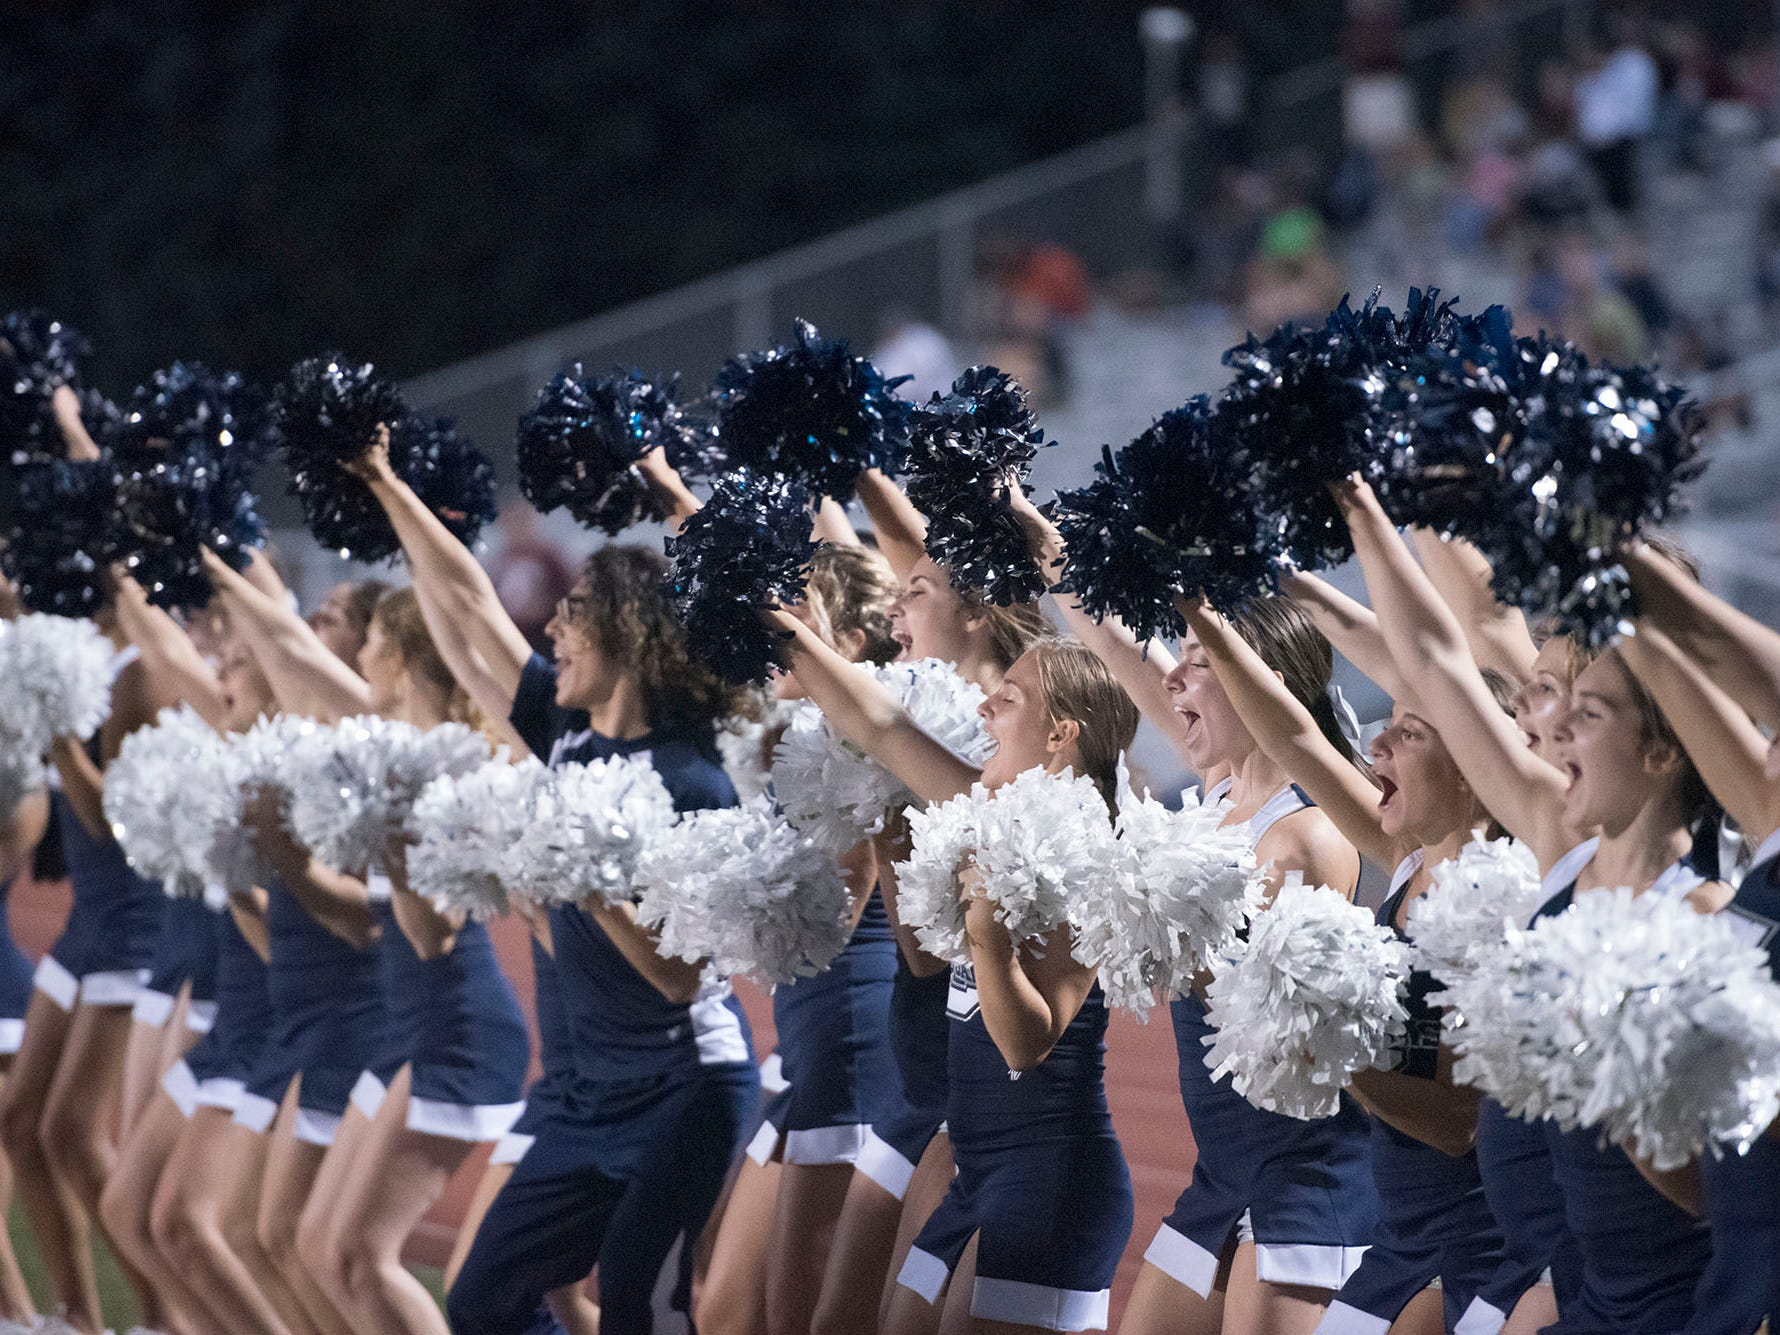 Chambersburg cheerleaders are pumped after a Trojan score. Chambersburg defeated Altoona in PIAA football to move to 4-0 on Friday, Sept. 14, 2018.